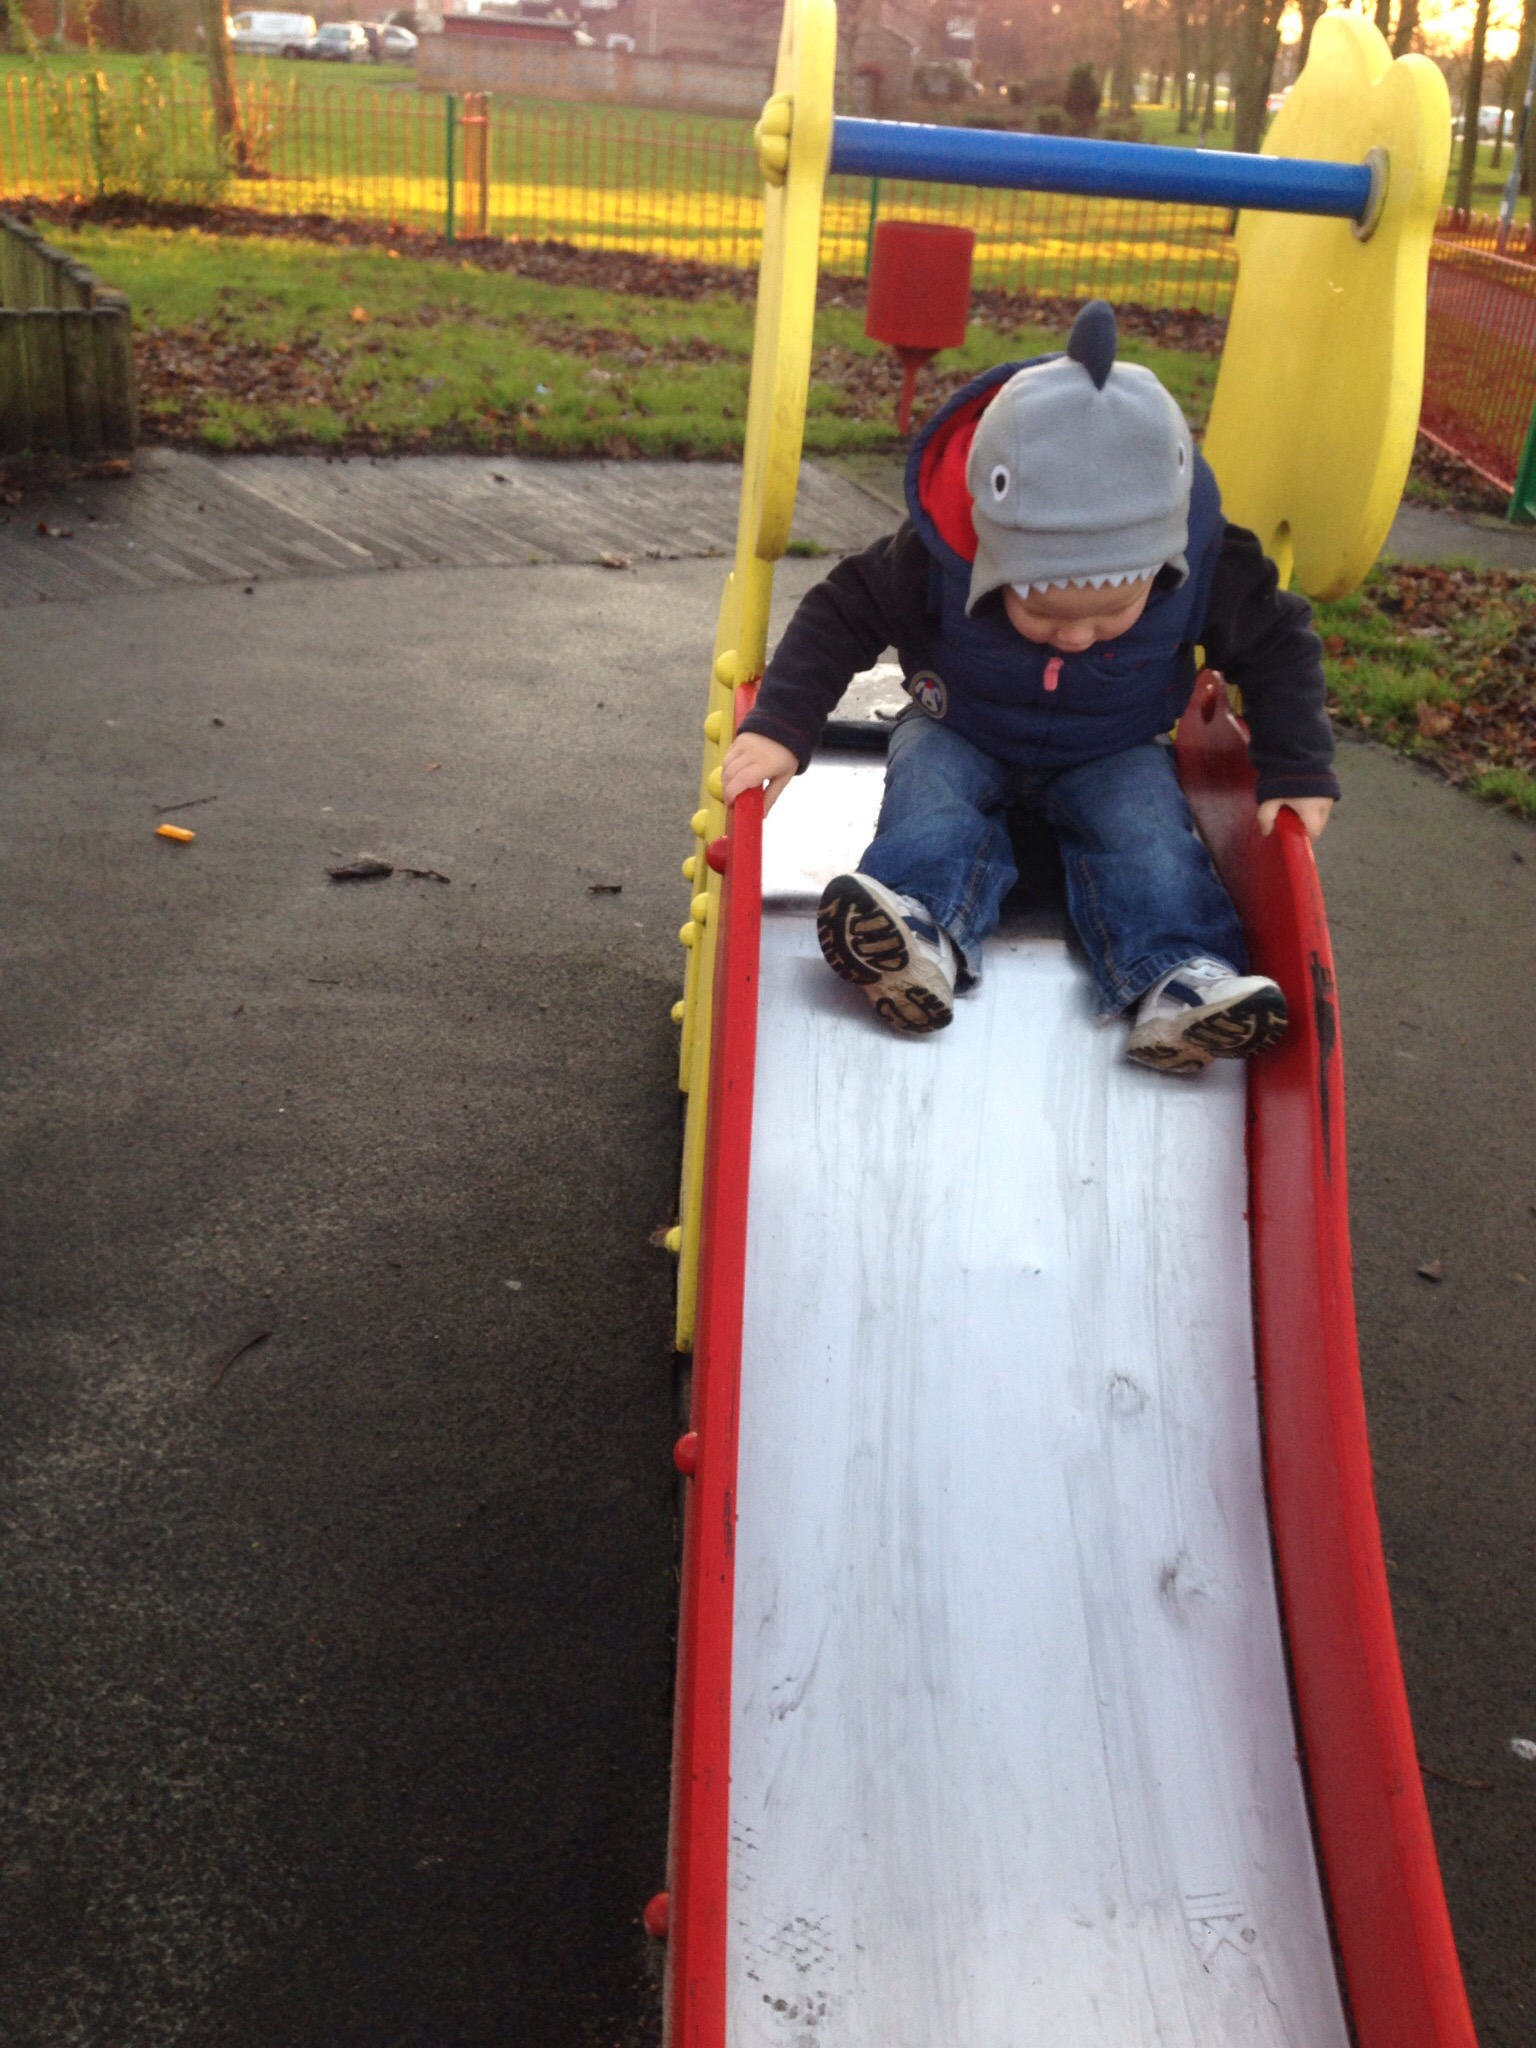 toddler getting ready to push himself down a slide